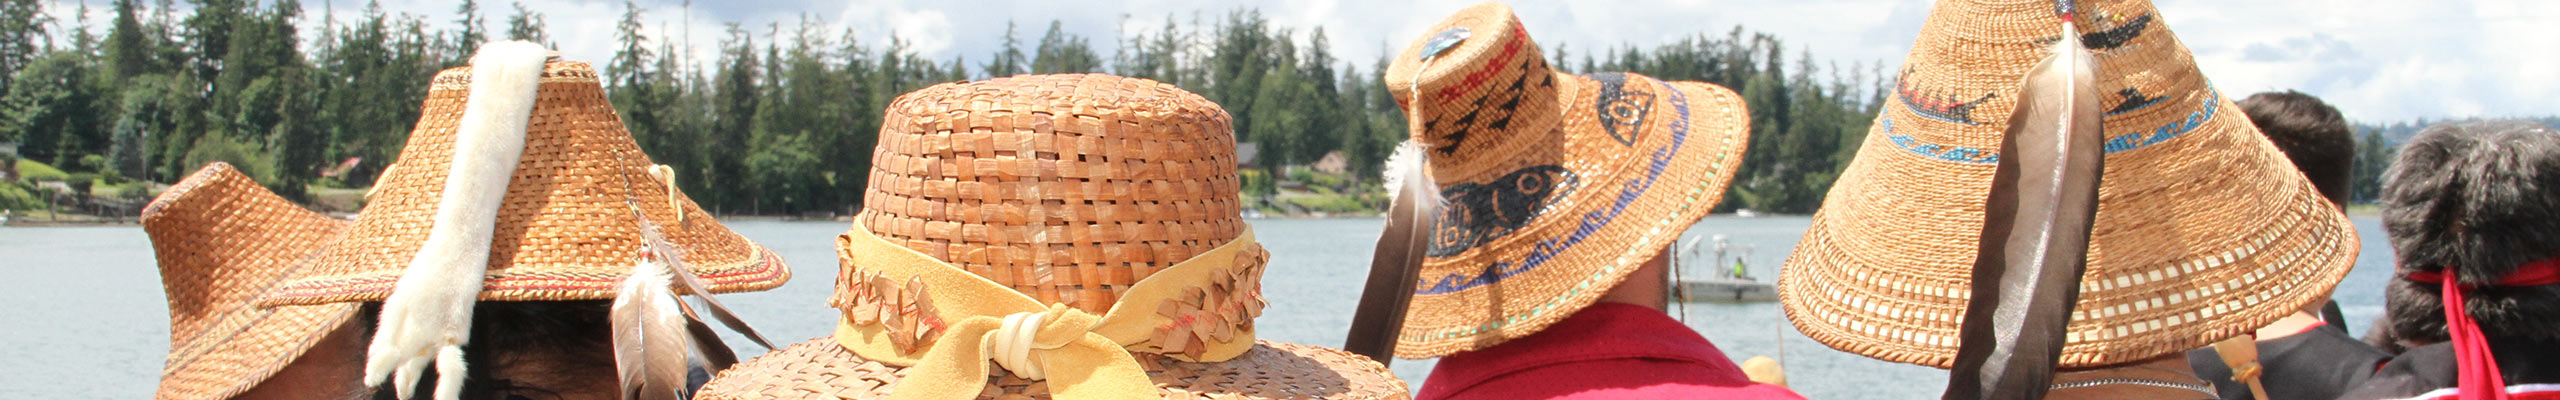 Tulalip Tribes Who We Are header image